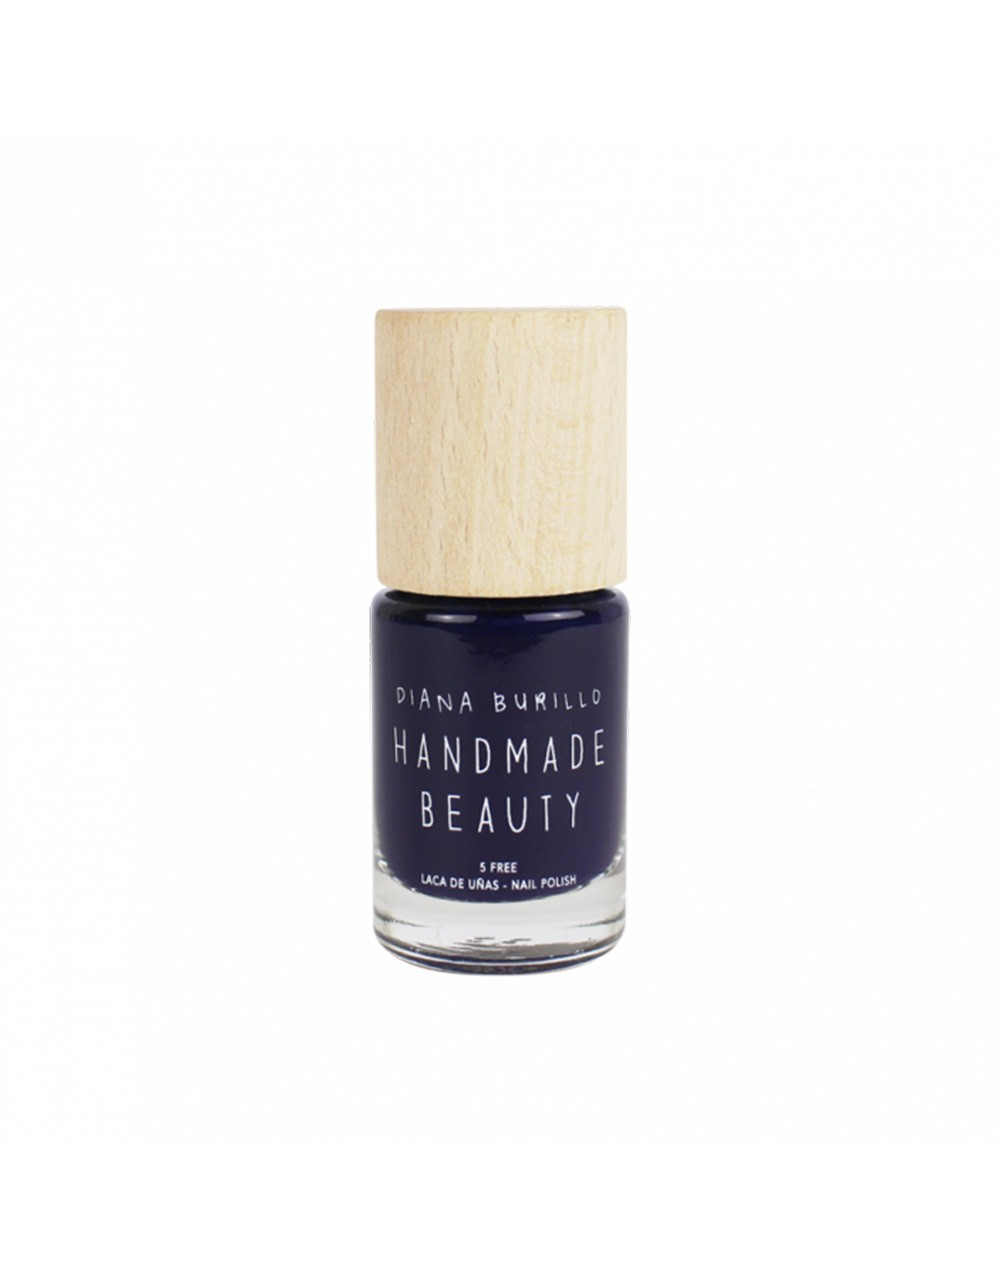 Esmalte de uñas Handmade Beauty 5 free, ecológico color azul marino, profundo e intenso como el mar Grape